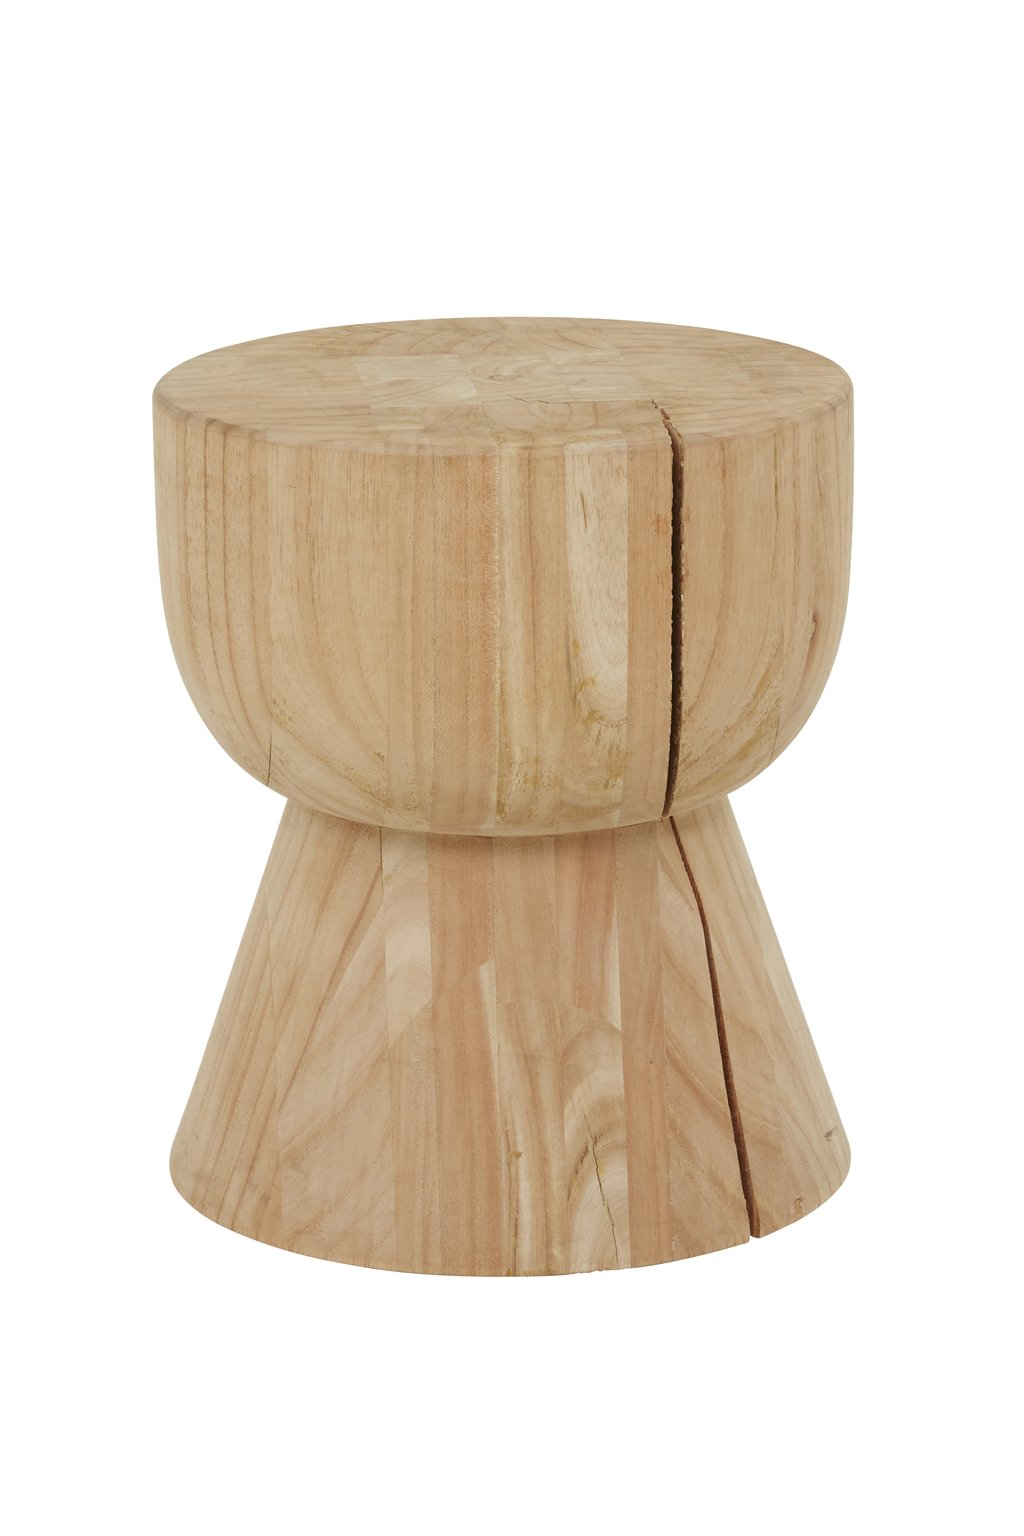 Woodrow Hourglass stump/stool to fenton & fenton - Transform your home into a tropical paradise | Aliz's Wonderland